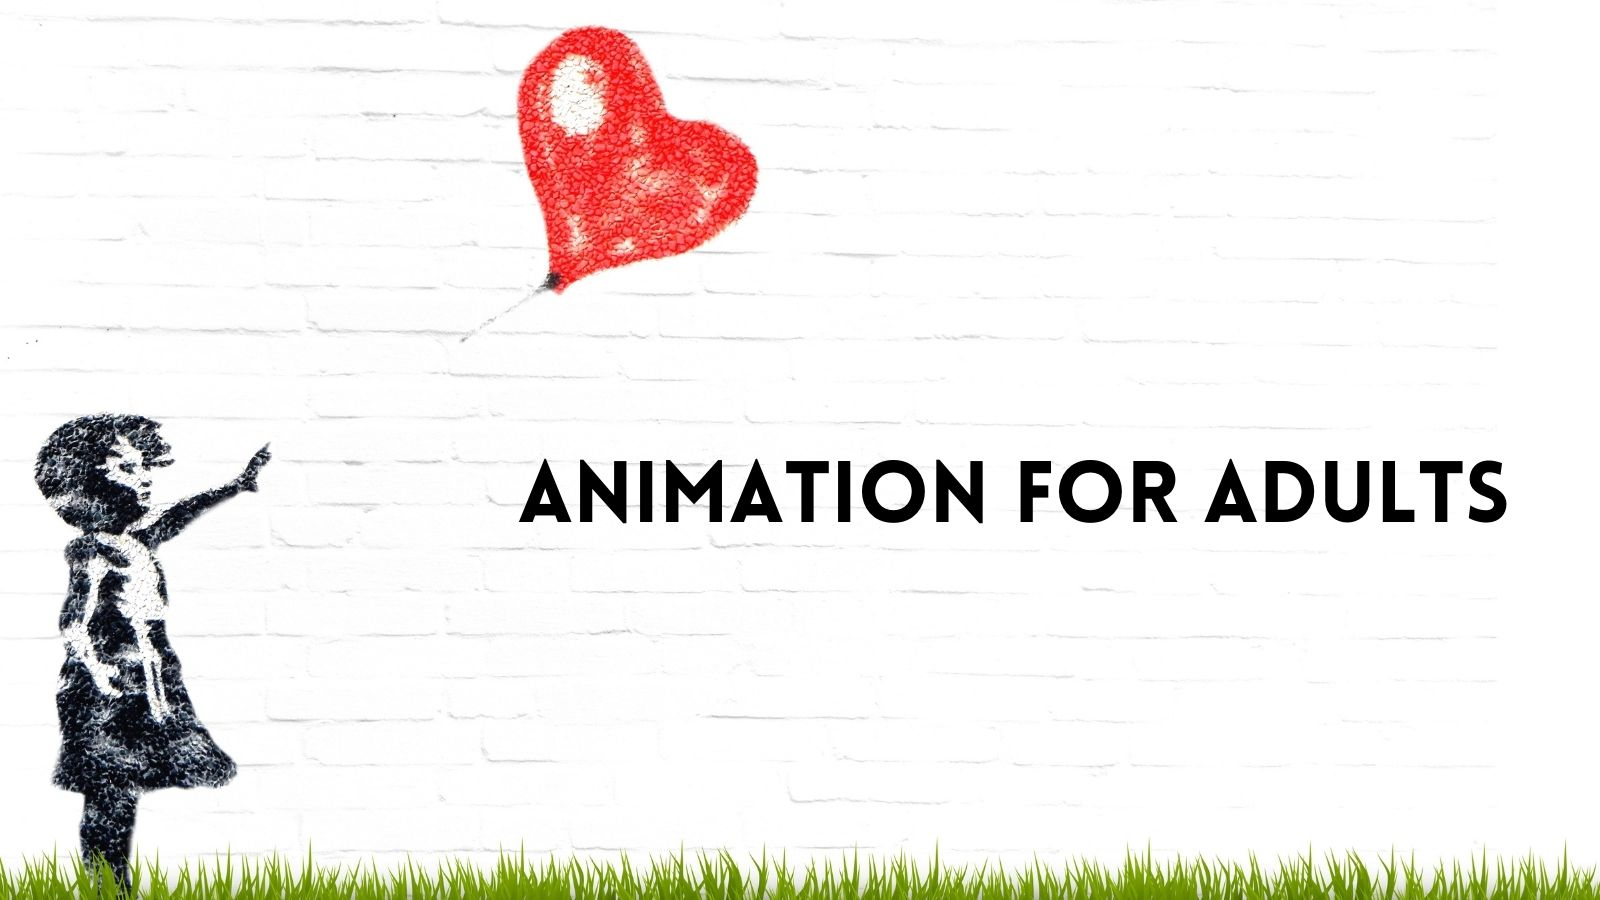 Animation for Adults